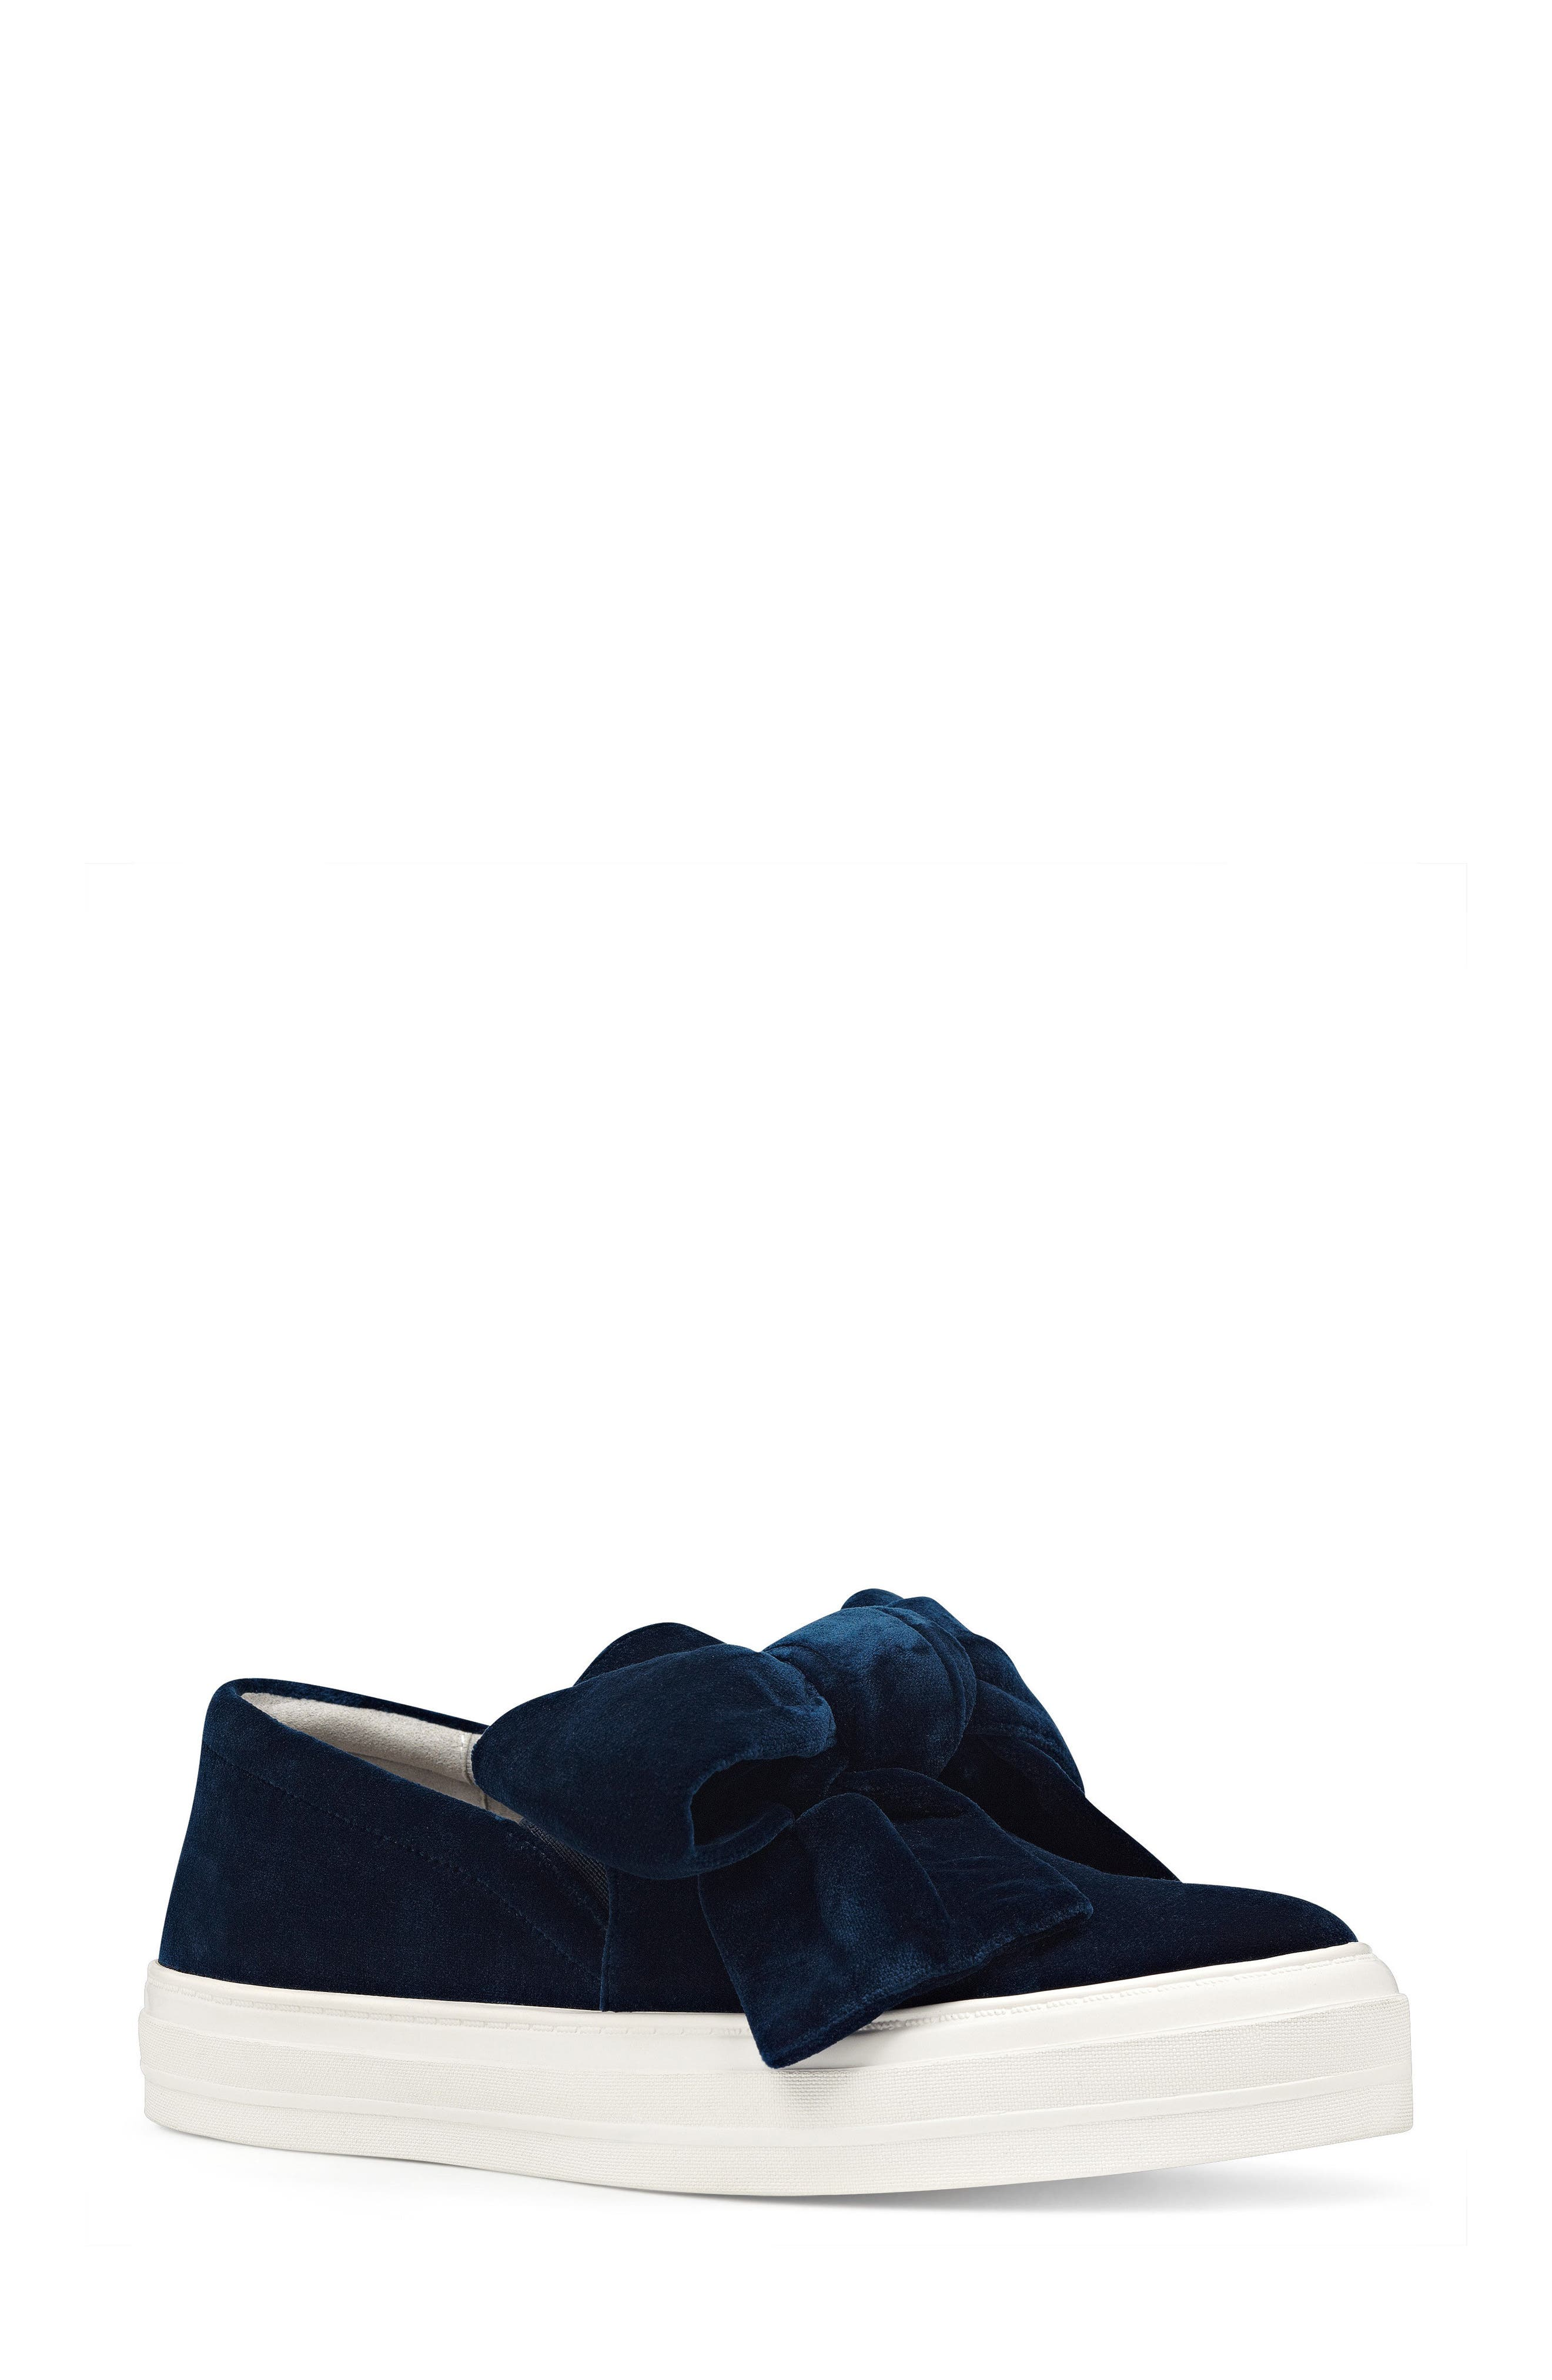 Onosha Bow Slip-On Sneaker,                         Main,                         color, Navy Fabric